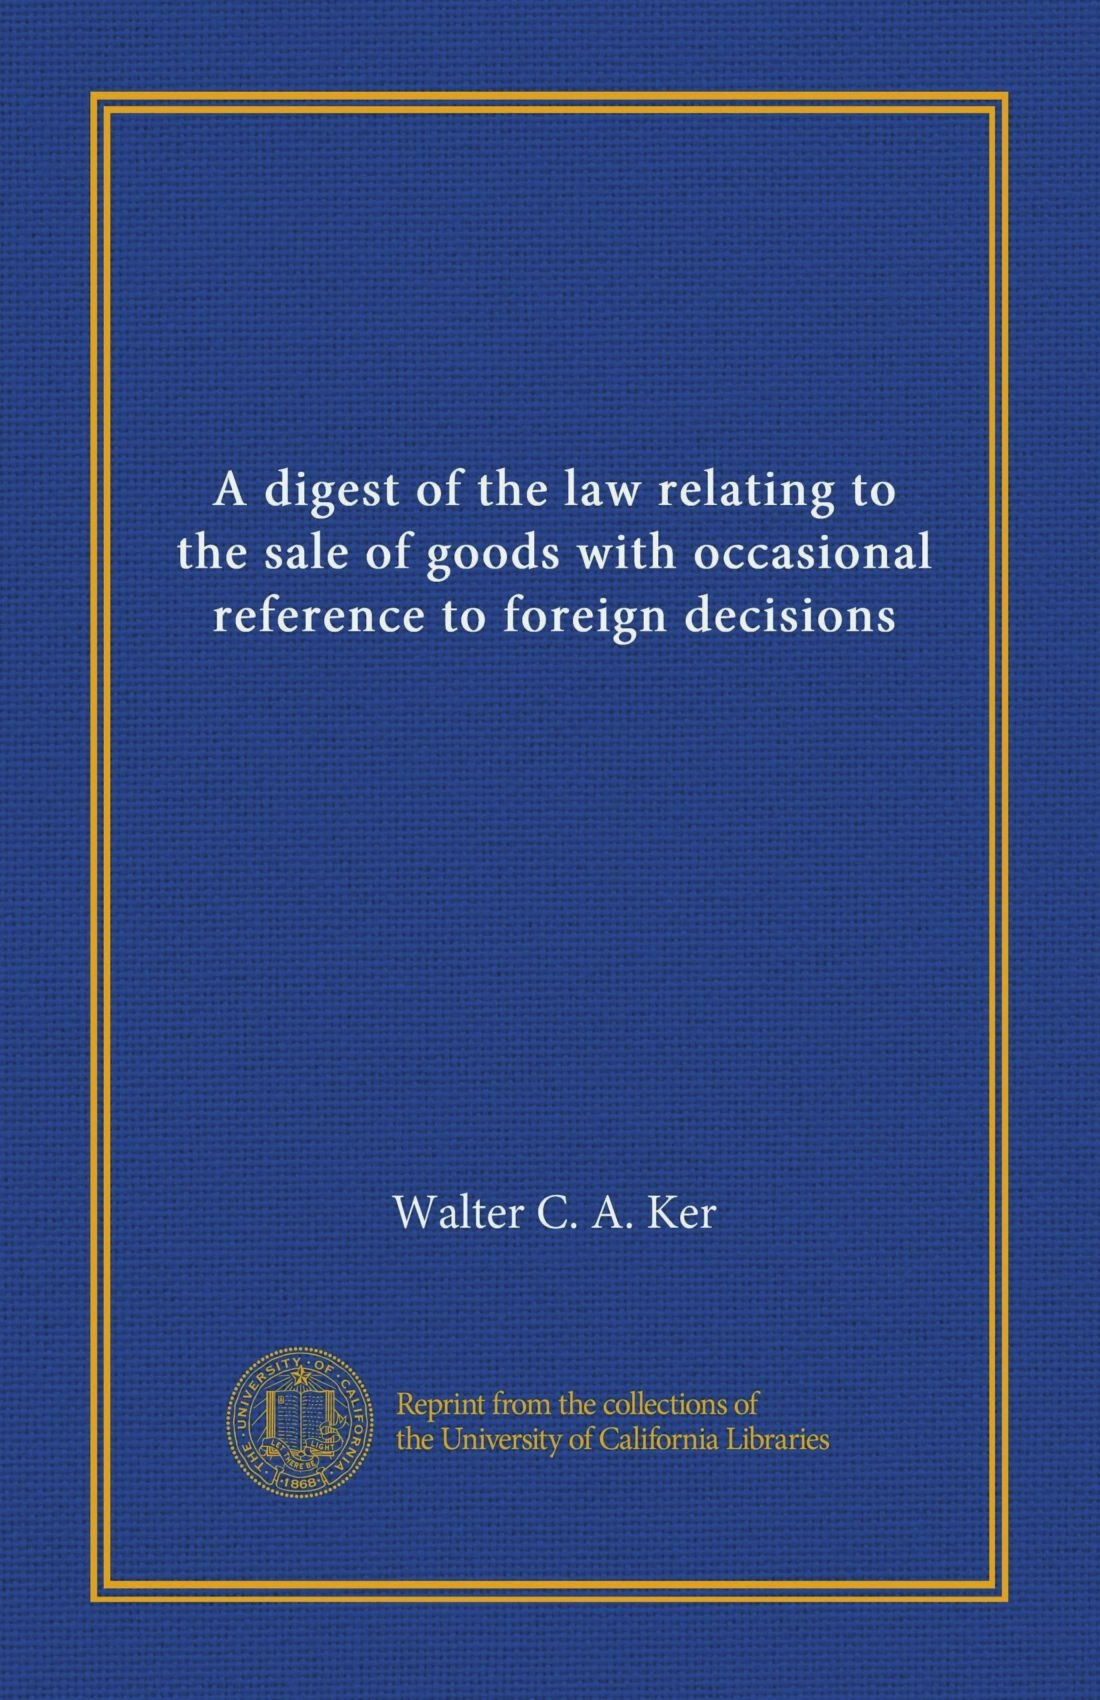 Download A digest of the law relating to the sale of goods with occasional reference to foreign decisions PDF